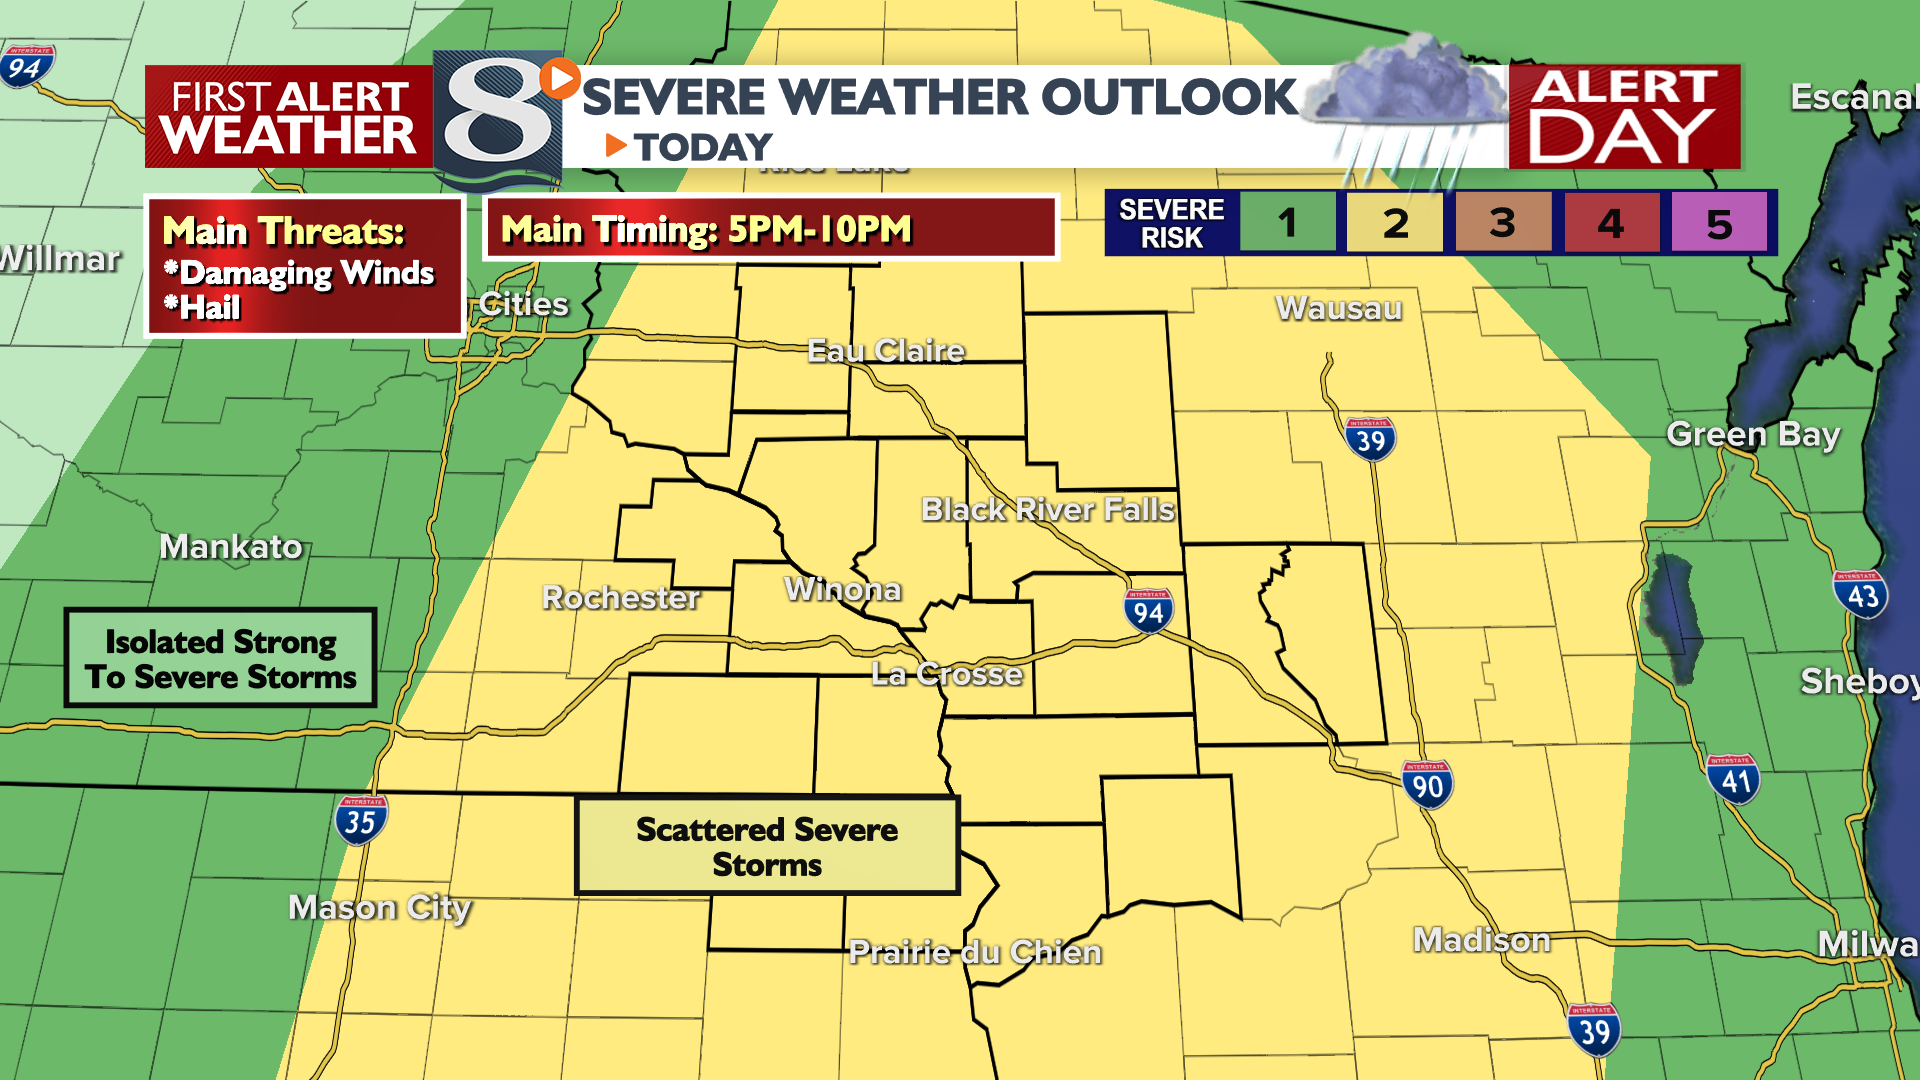 ALERT DAY: Strong Thunderstorms Possible This Evening ...